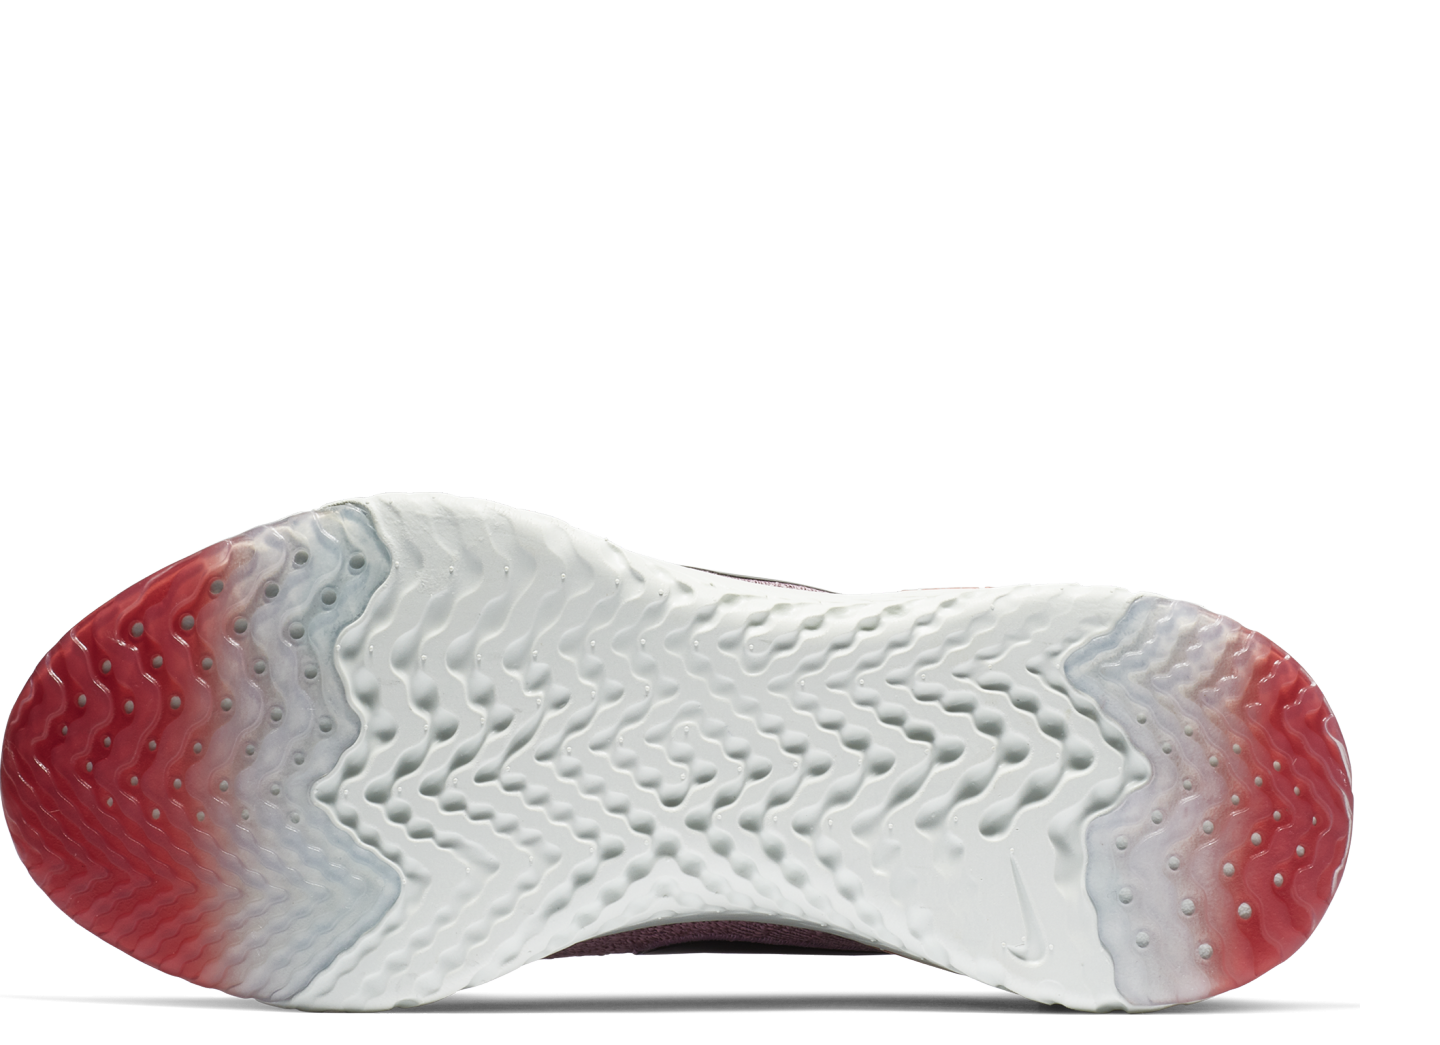 check out e2795 e0ee0 lineal til iphone The see-through rubber on the traction tread makes the  outsole more hardwearing, especially under the heel and forefoot areas.